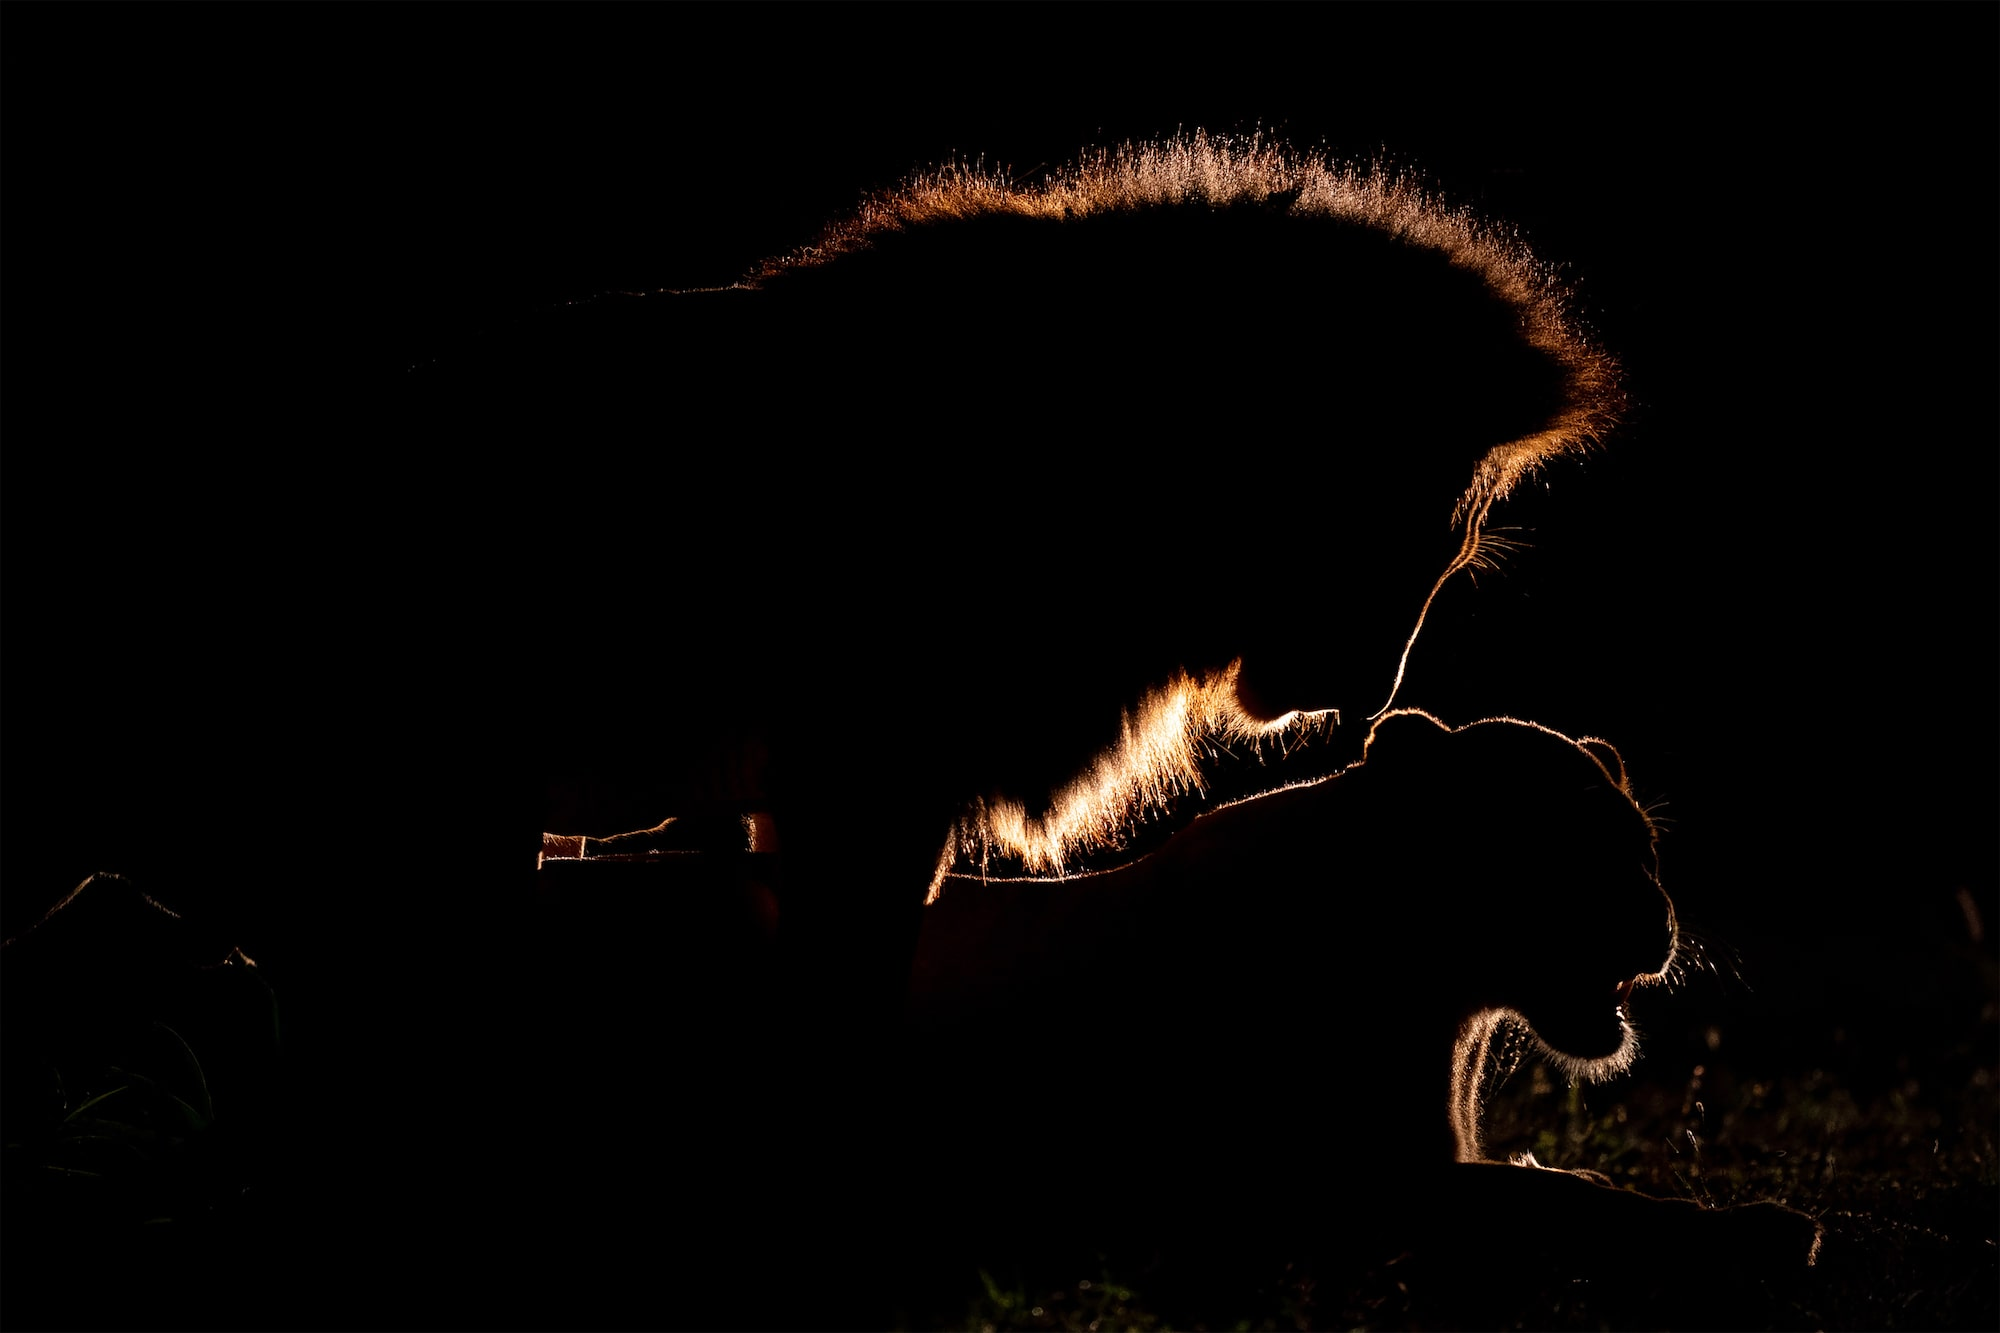 andreas-hemb-sony-alpha-9-a-silhouette-of-2-lions